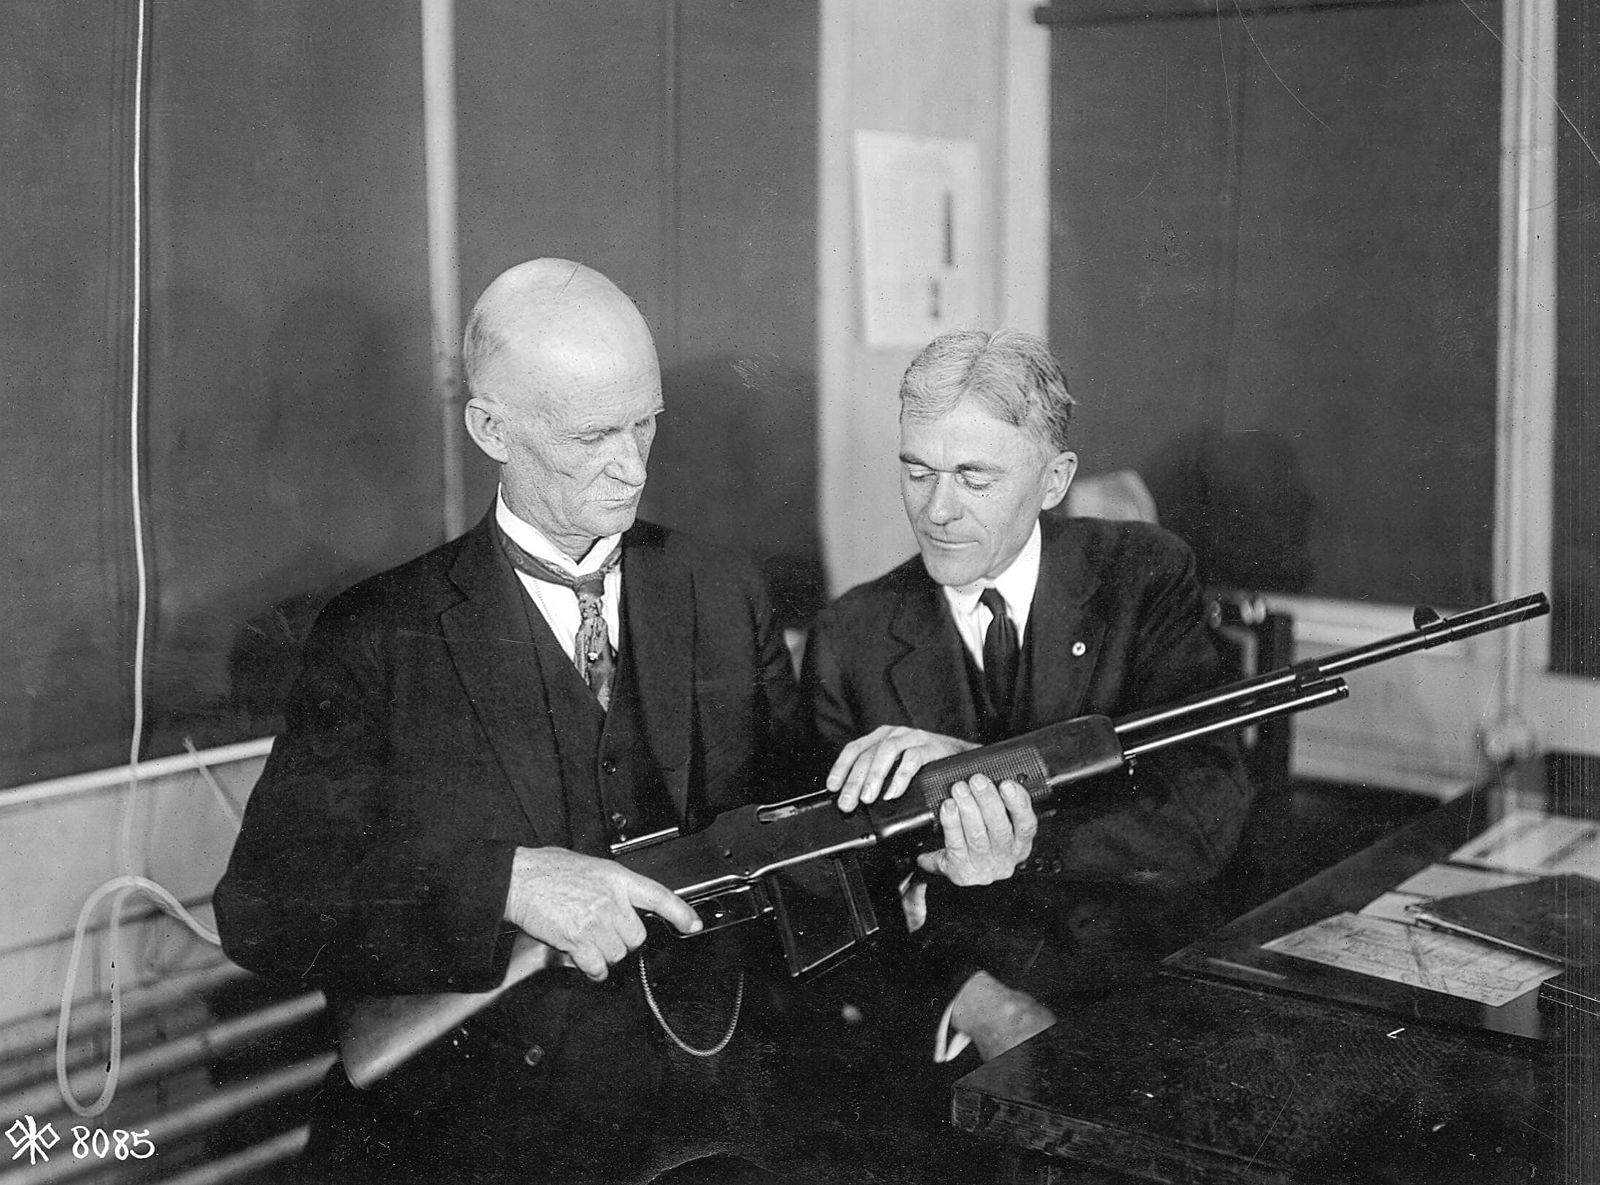 Browning with his BAR - John M. Browning, et Mr. Burton (expert Winchester) discutent autour du B.A.R 1918 au Winchester Plant vers 1918